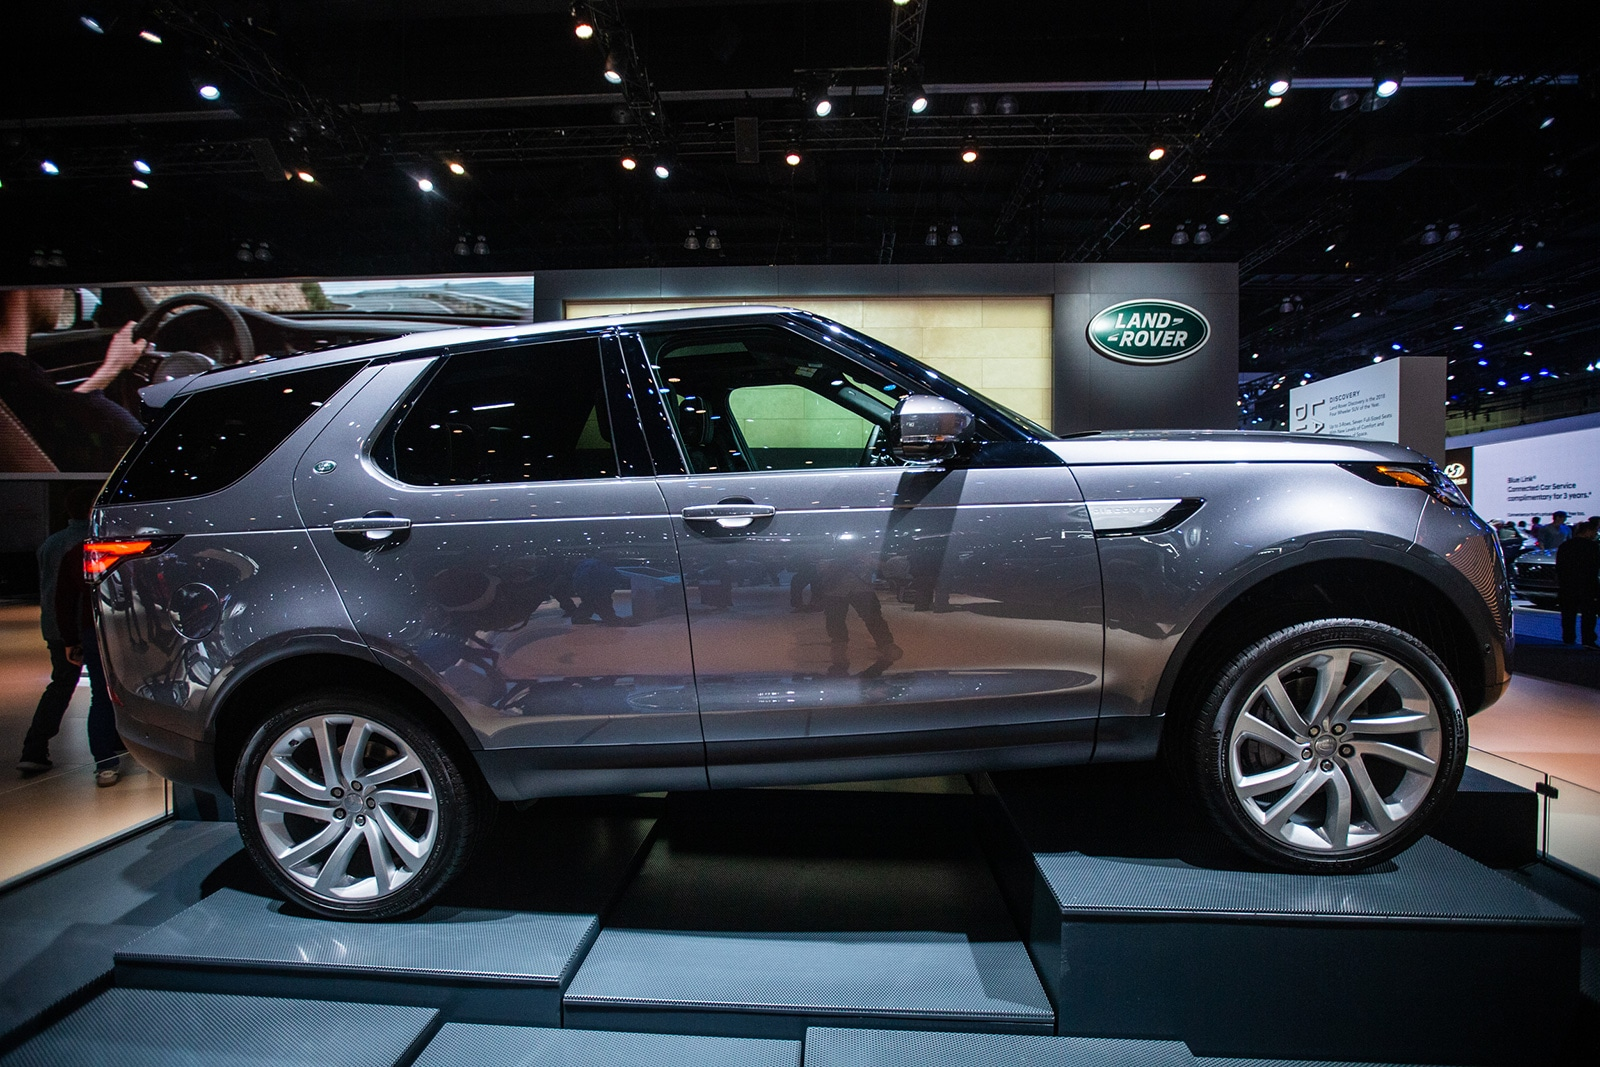 2018-South-Hall---Land-Rover-074